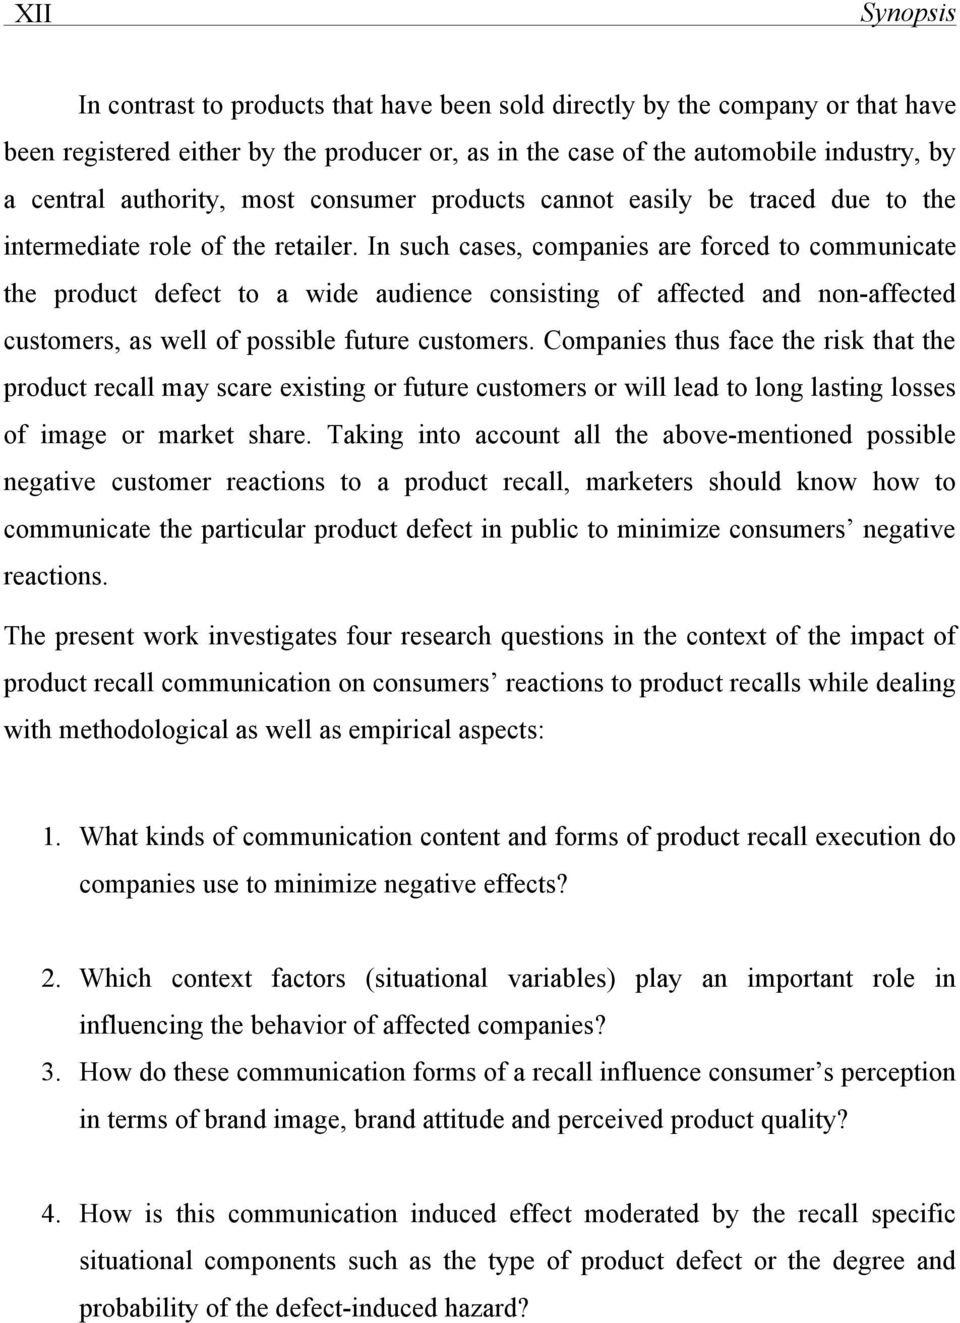 effect customers perception brand image of fmcg companies marketing essay Industry, and finally, consumer perceptions of generic versus branded drugs are  examined  understanding of customer-based brand equity is essential in order  to fully  the fast moving consumer goods industry (fmcg) brands are viewed as  the  companies, they must embrace marketing and branding strategies to a.